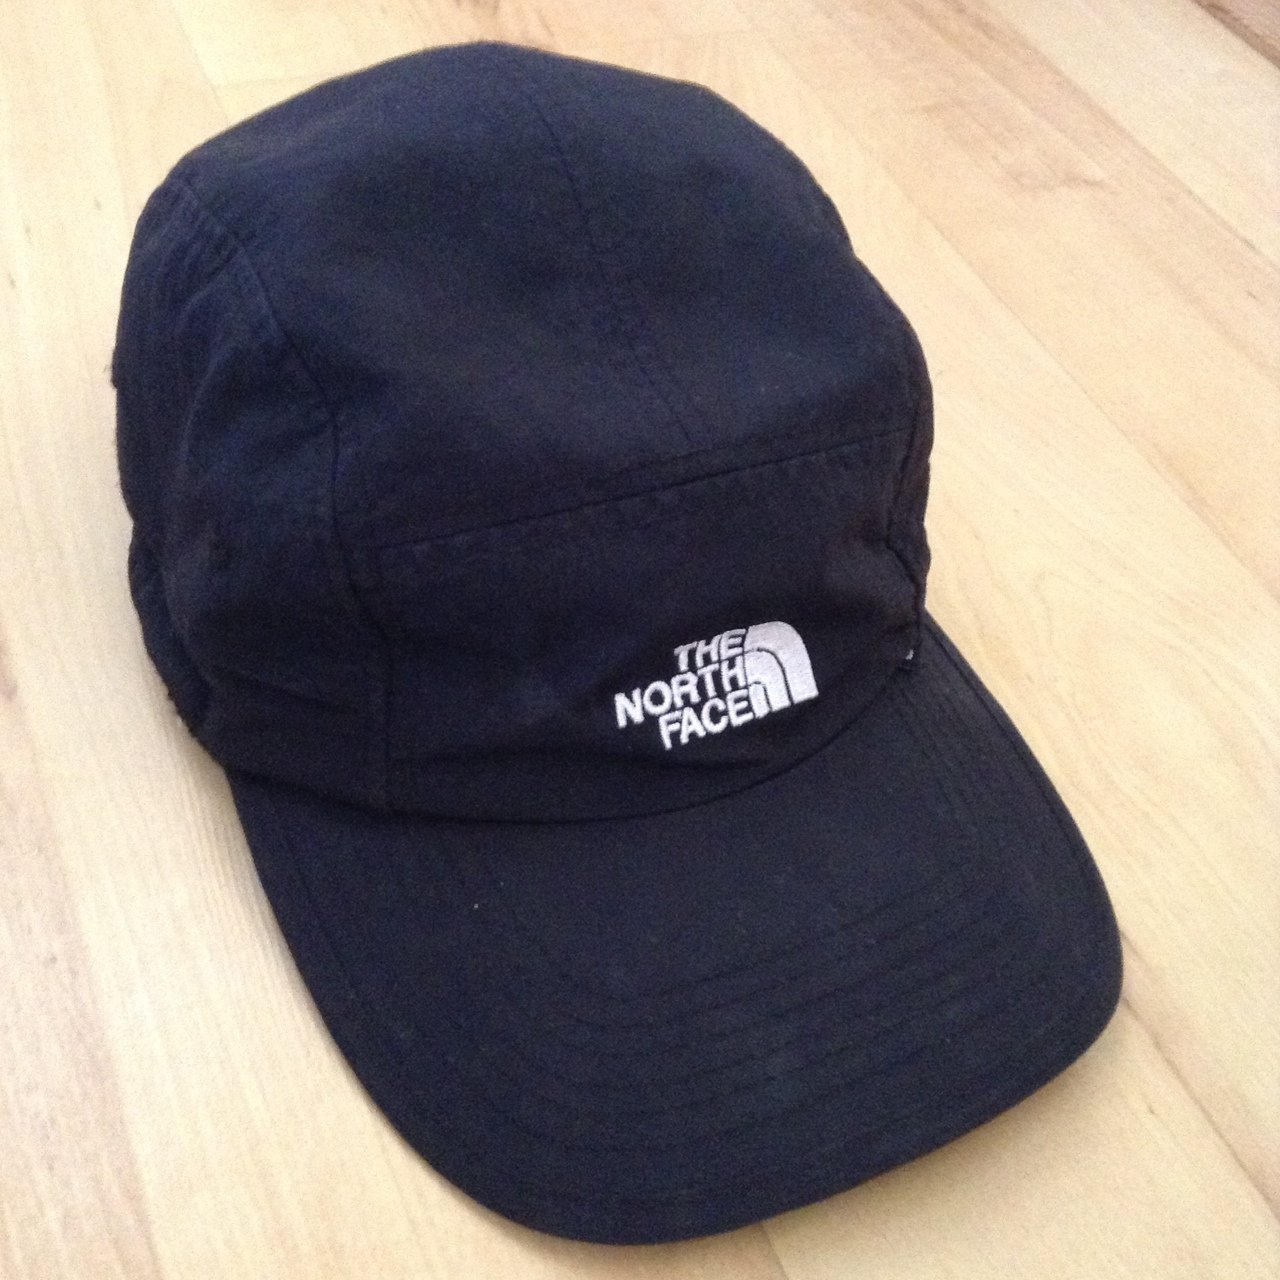 Vintage The North Face 5 Panel. Adjustable size 92716c85ea6